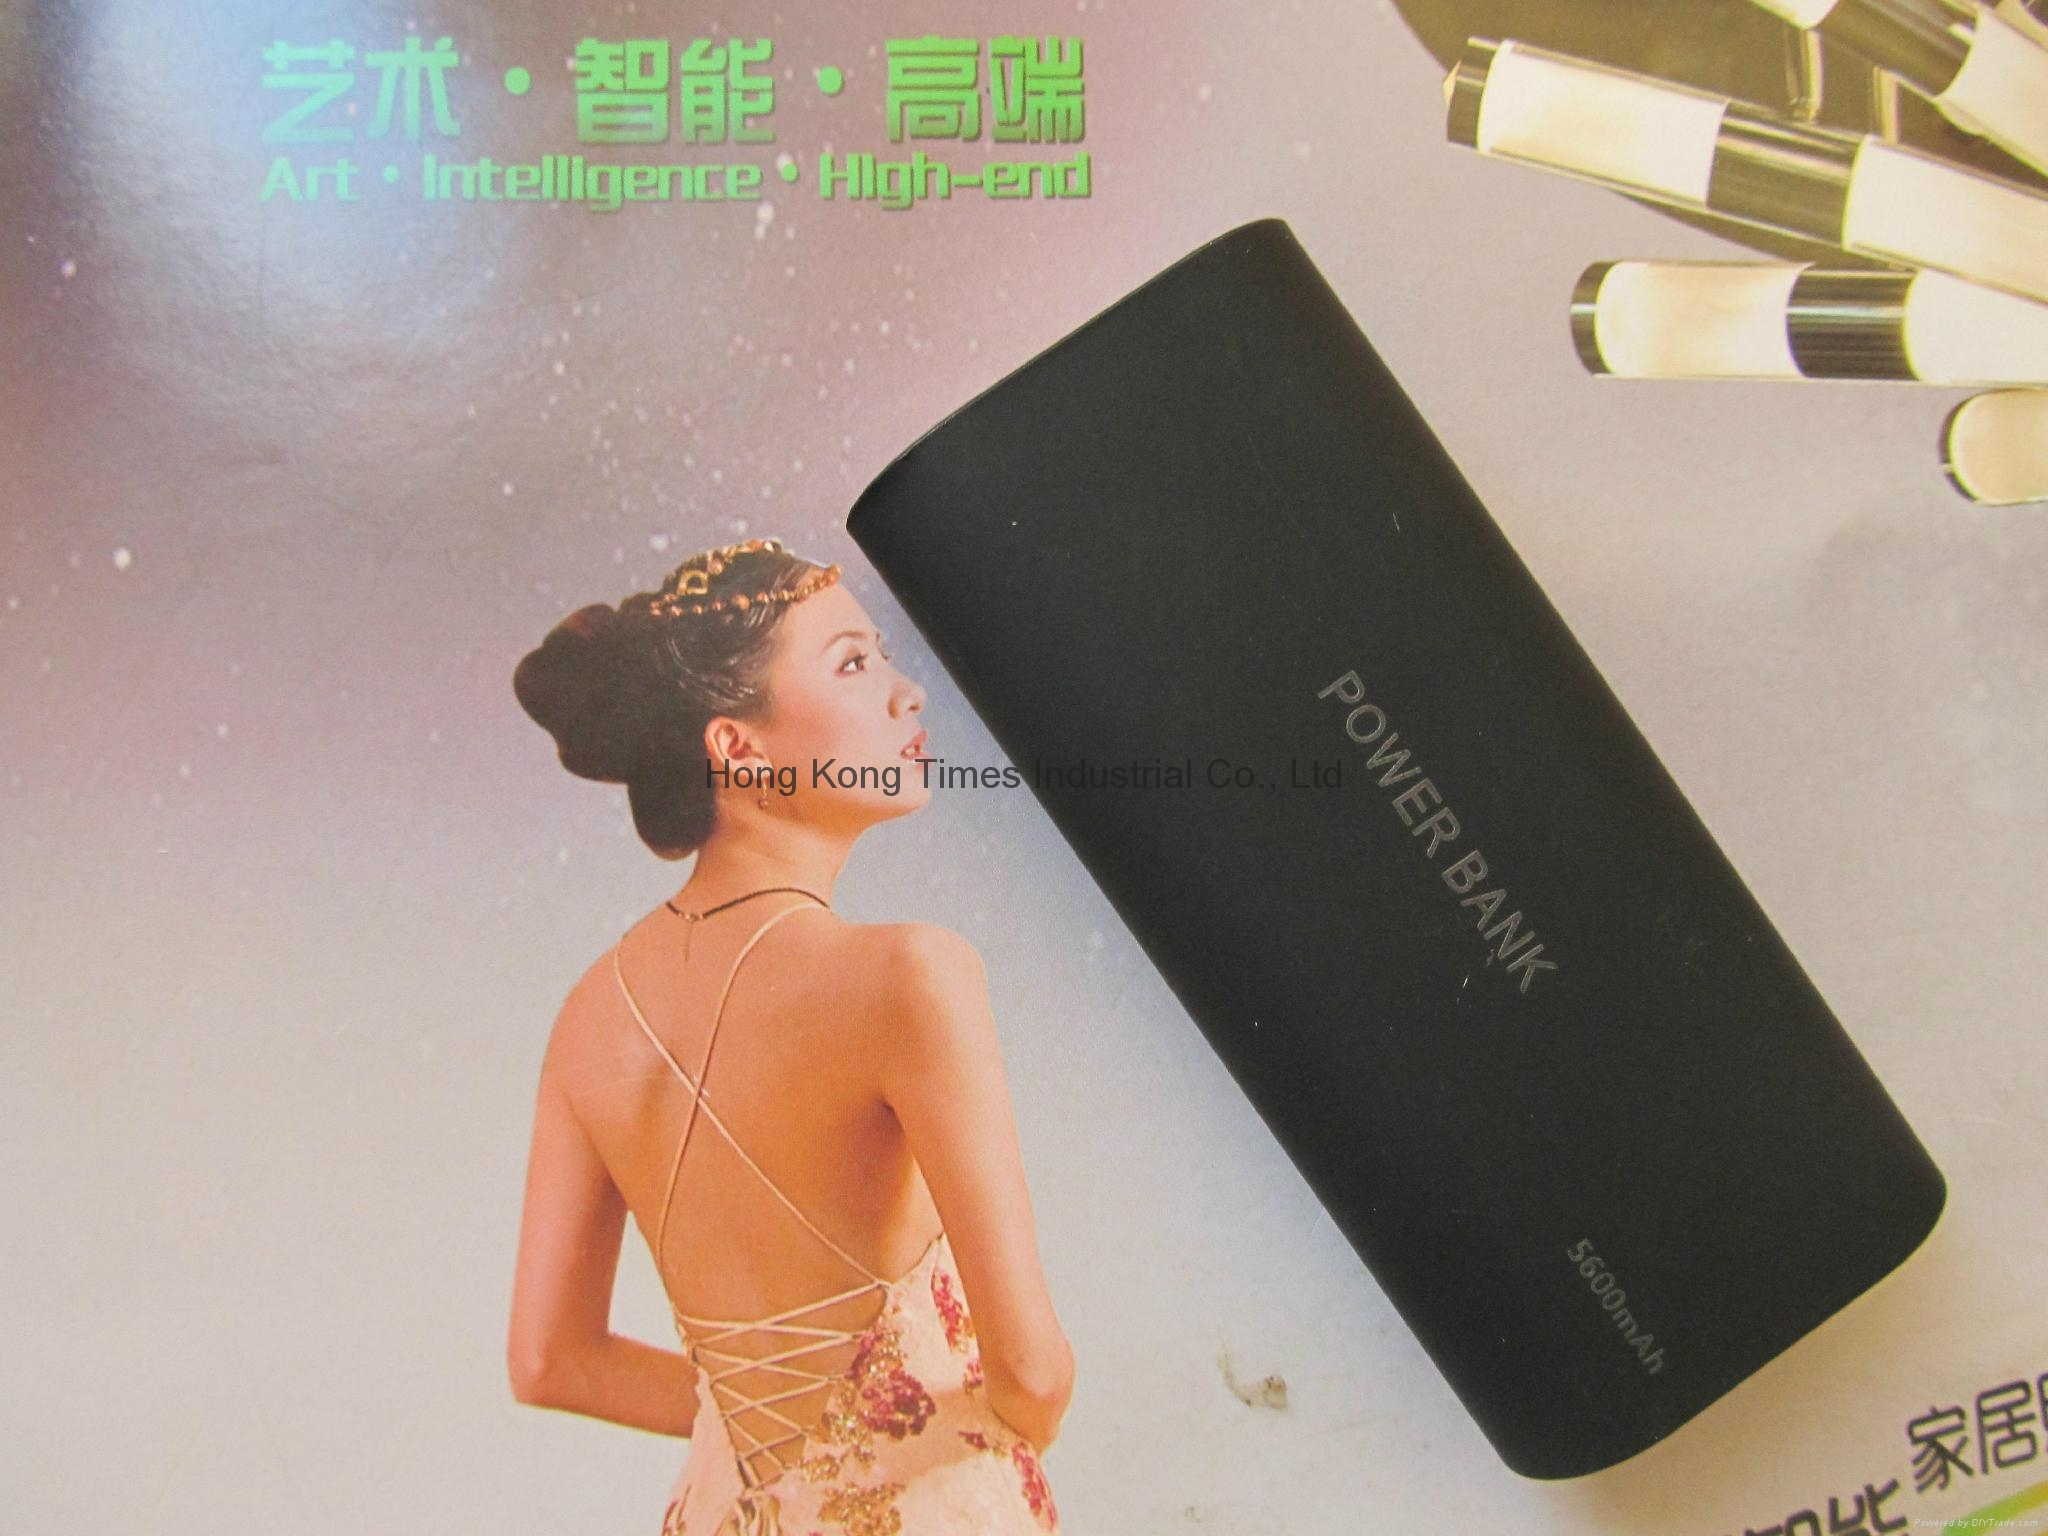 External Portable Battery Power Bank Charger For iPhone 6 6 Plus 5 5s 5c For S6 16